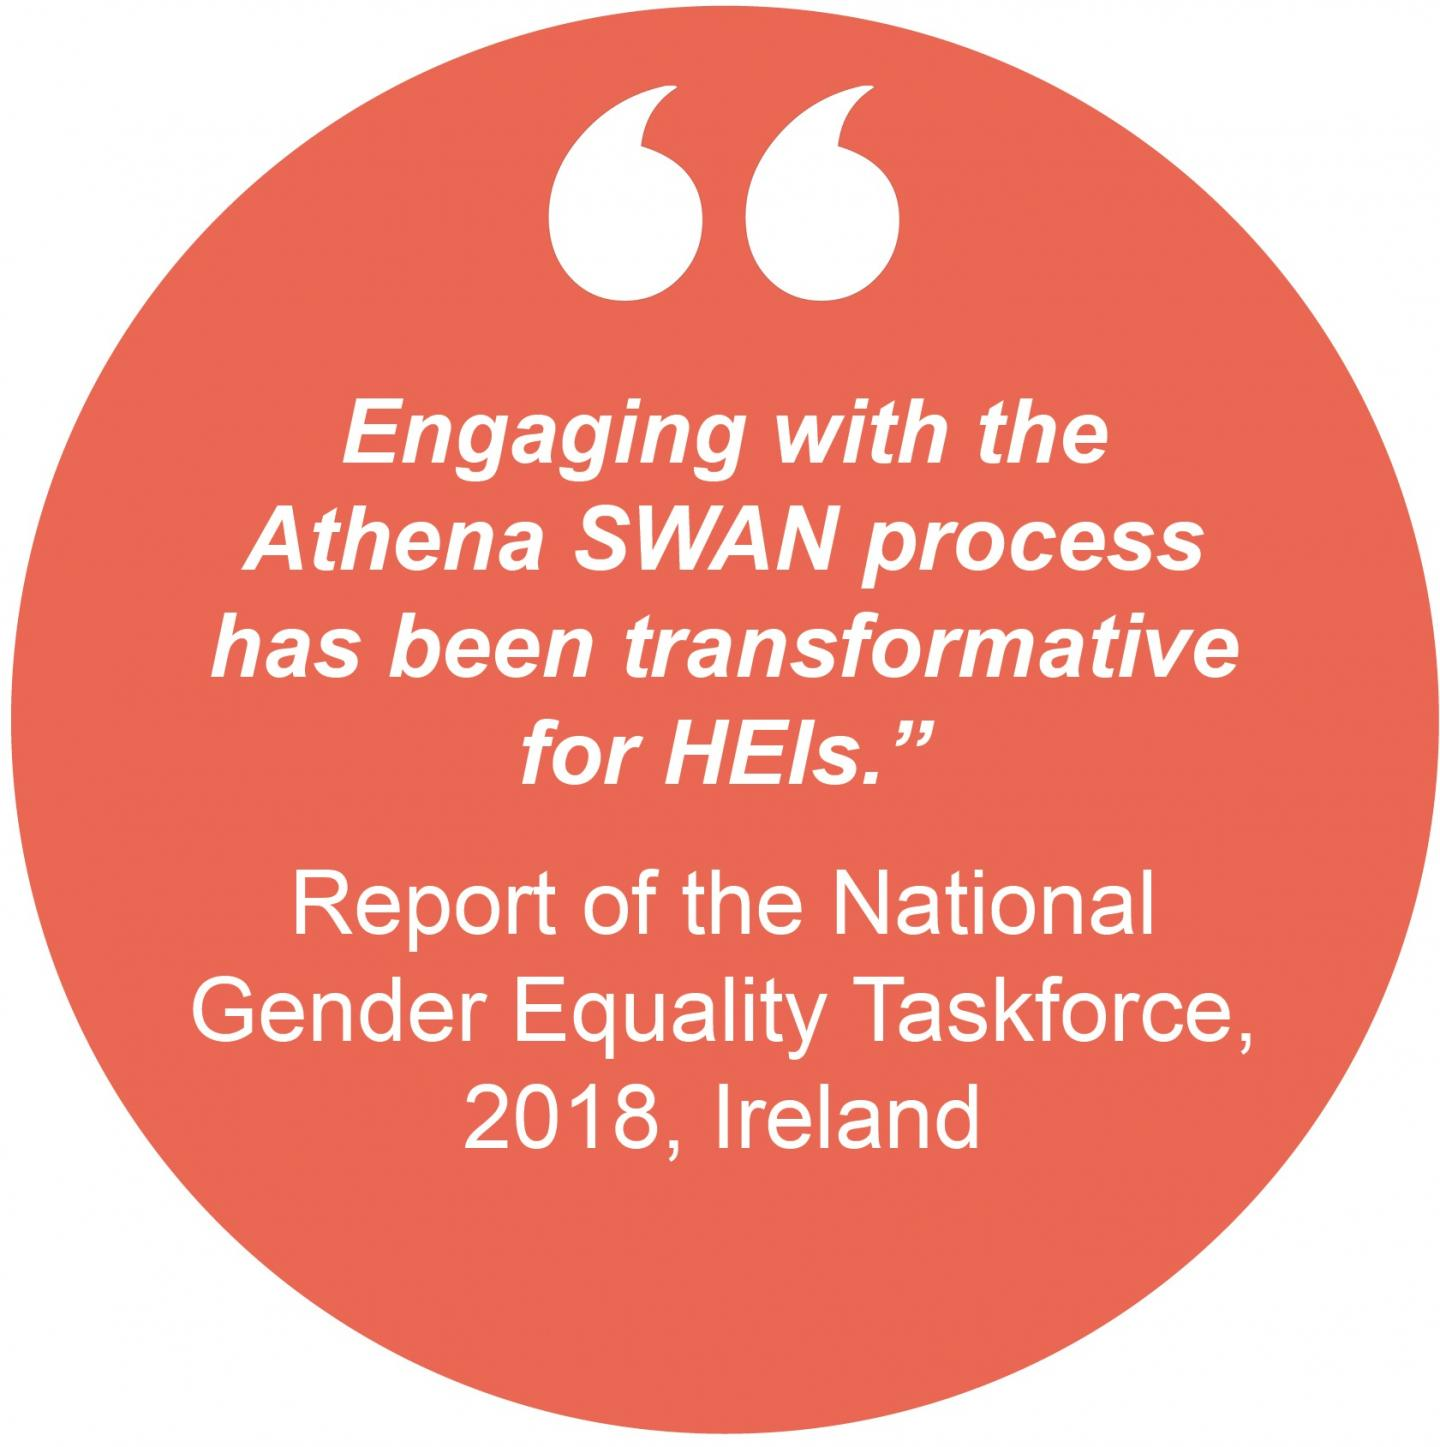 """Engaging with the Athena SWAN process has been transformative for HEIs"" Report of the National Gender Equality Taskforce, 2018, Ireland"